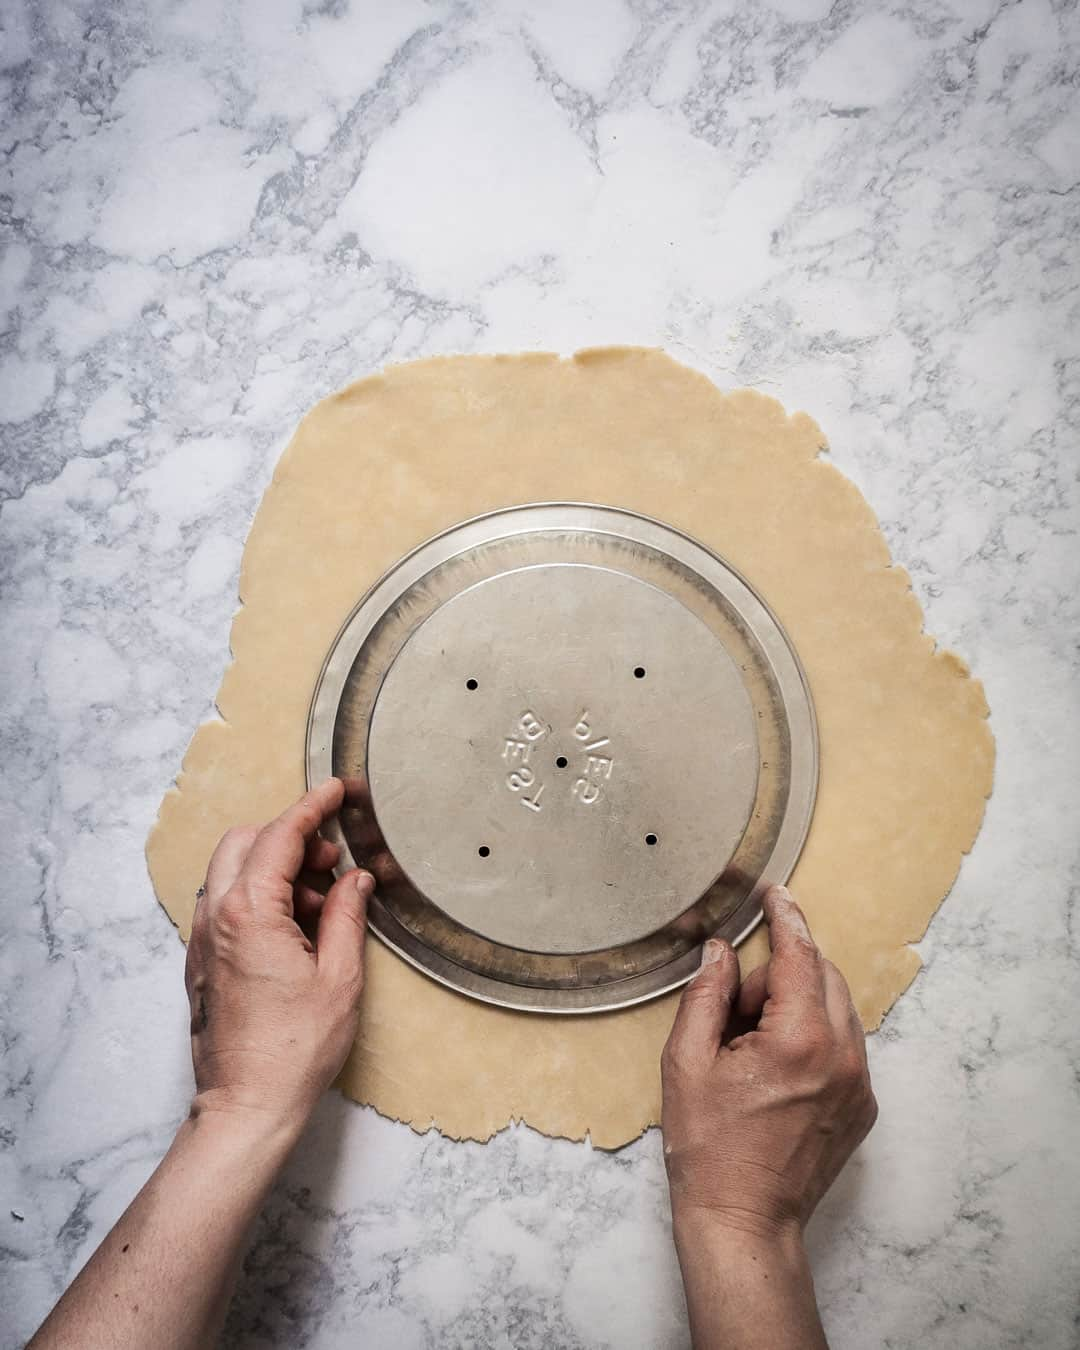 Marble surface with pie dough rolled out and hands holding a metal pie dish to check sizing